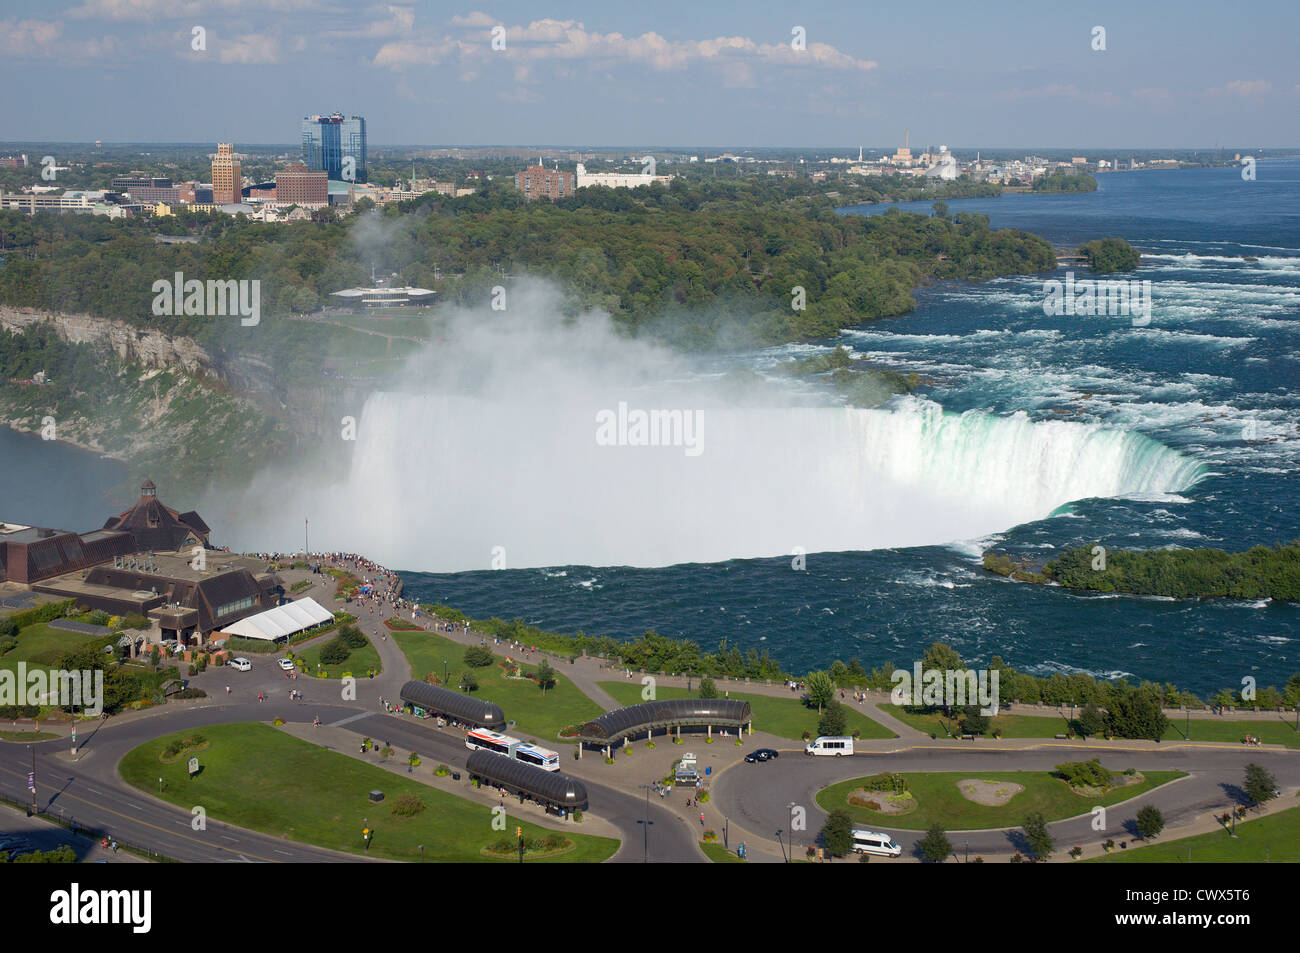 Canadian Horseshoe water falls at Niagara Falls, Canada - Stock Image